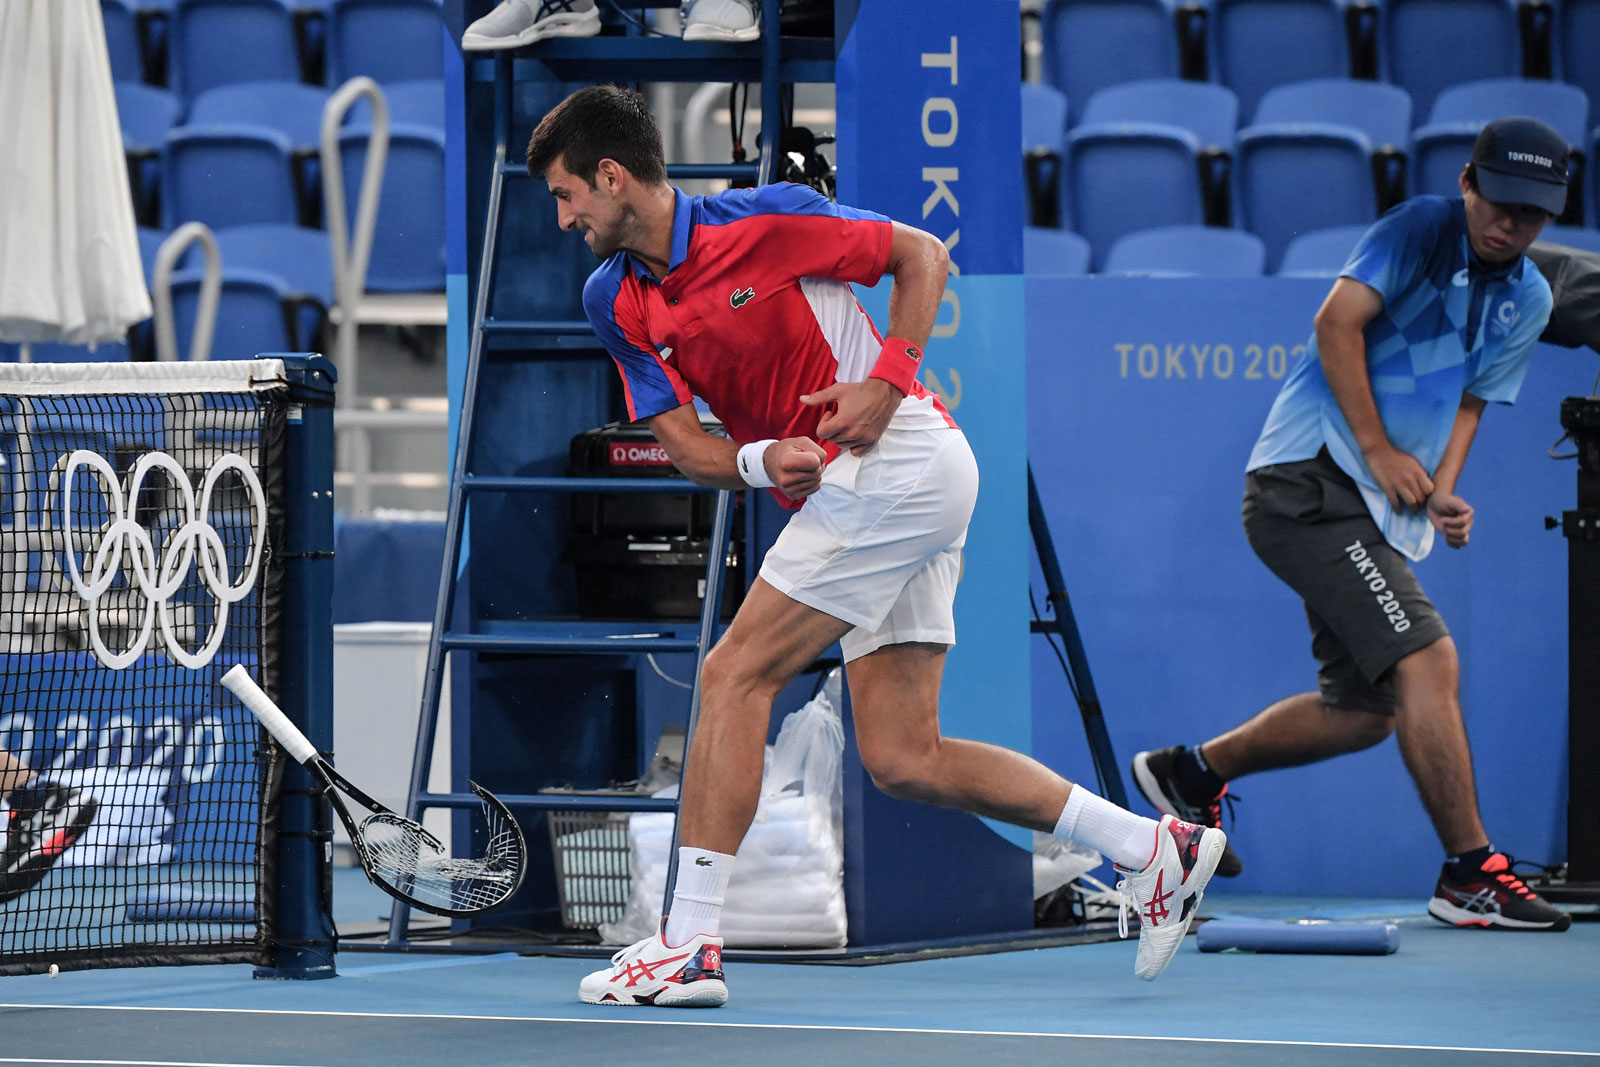 Novak Djokovic smashes his racket during his men's singles tennis match for the bronze medal against Pablo Carreno Busta.